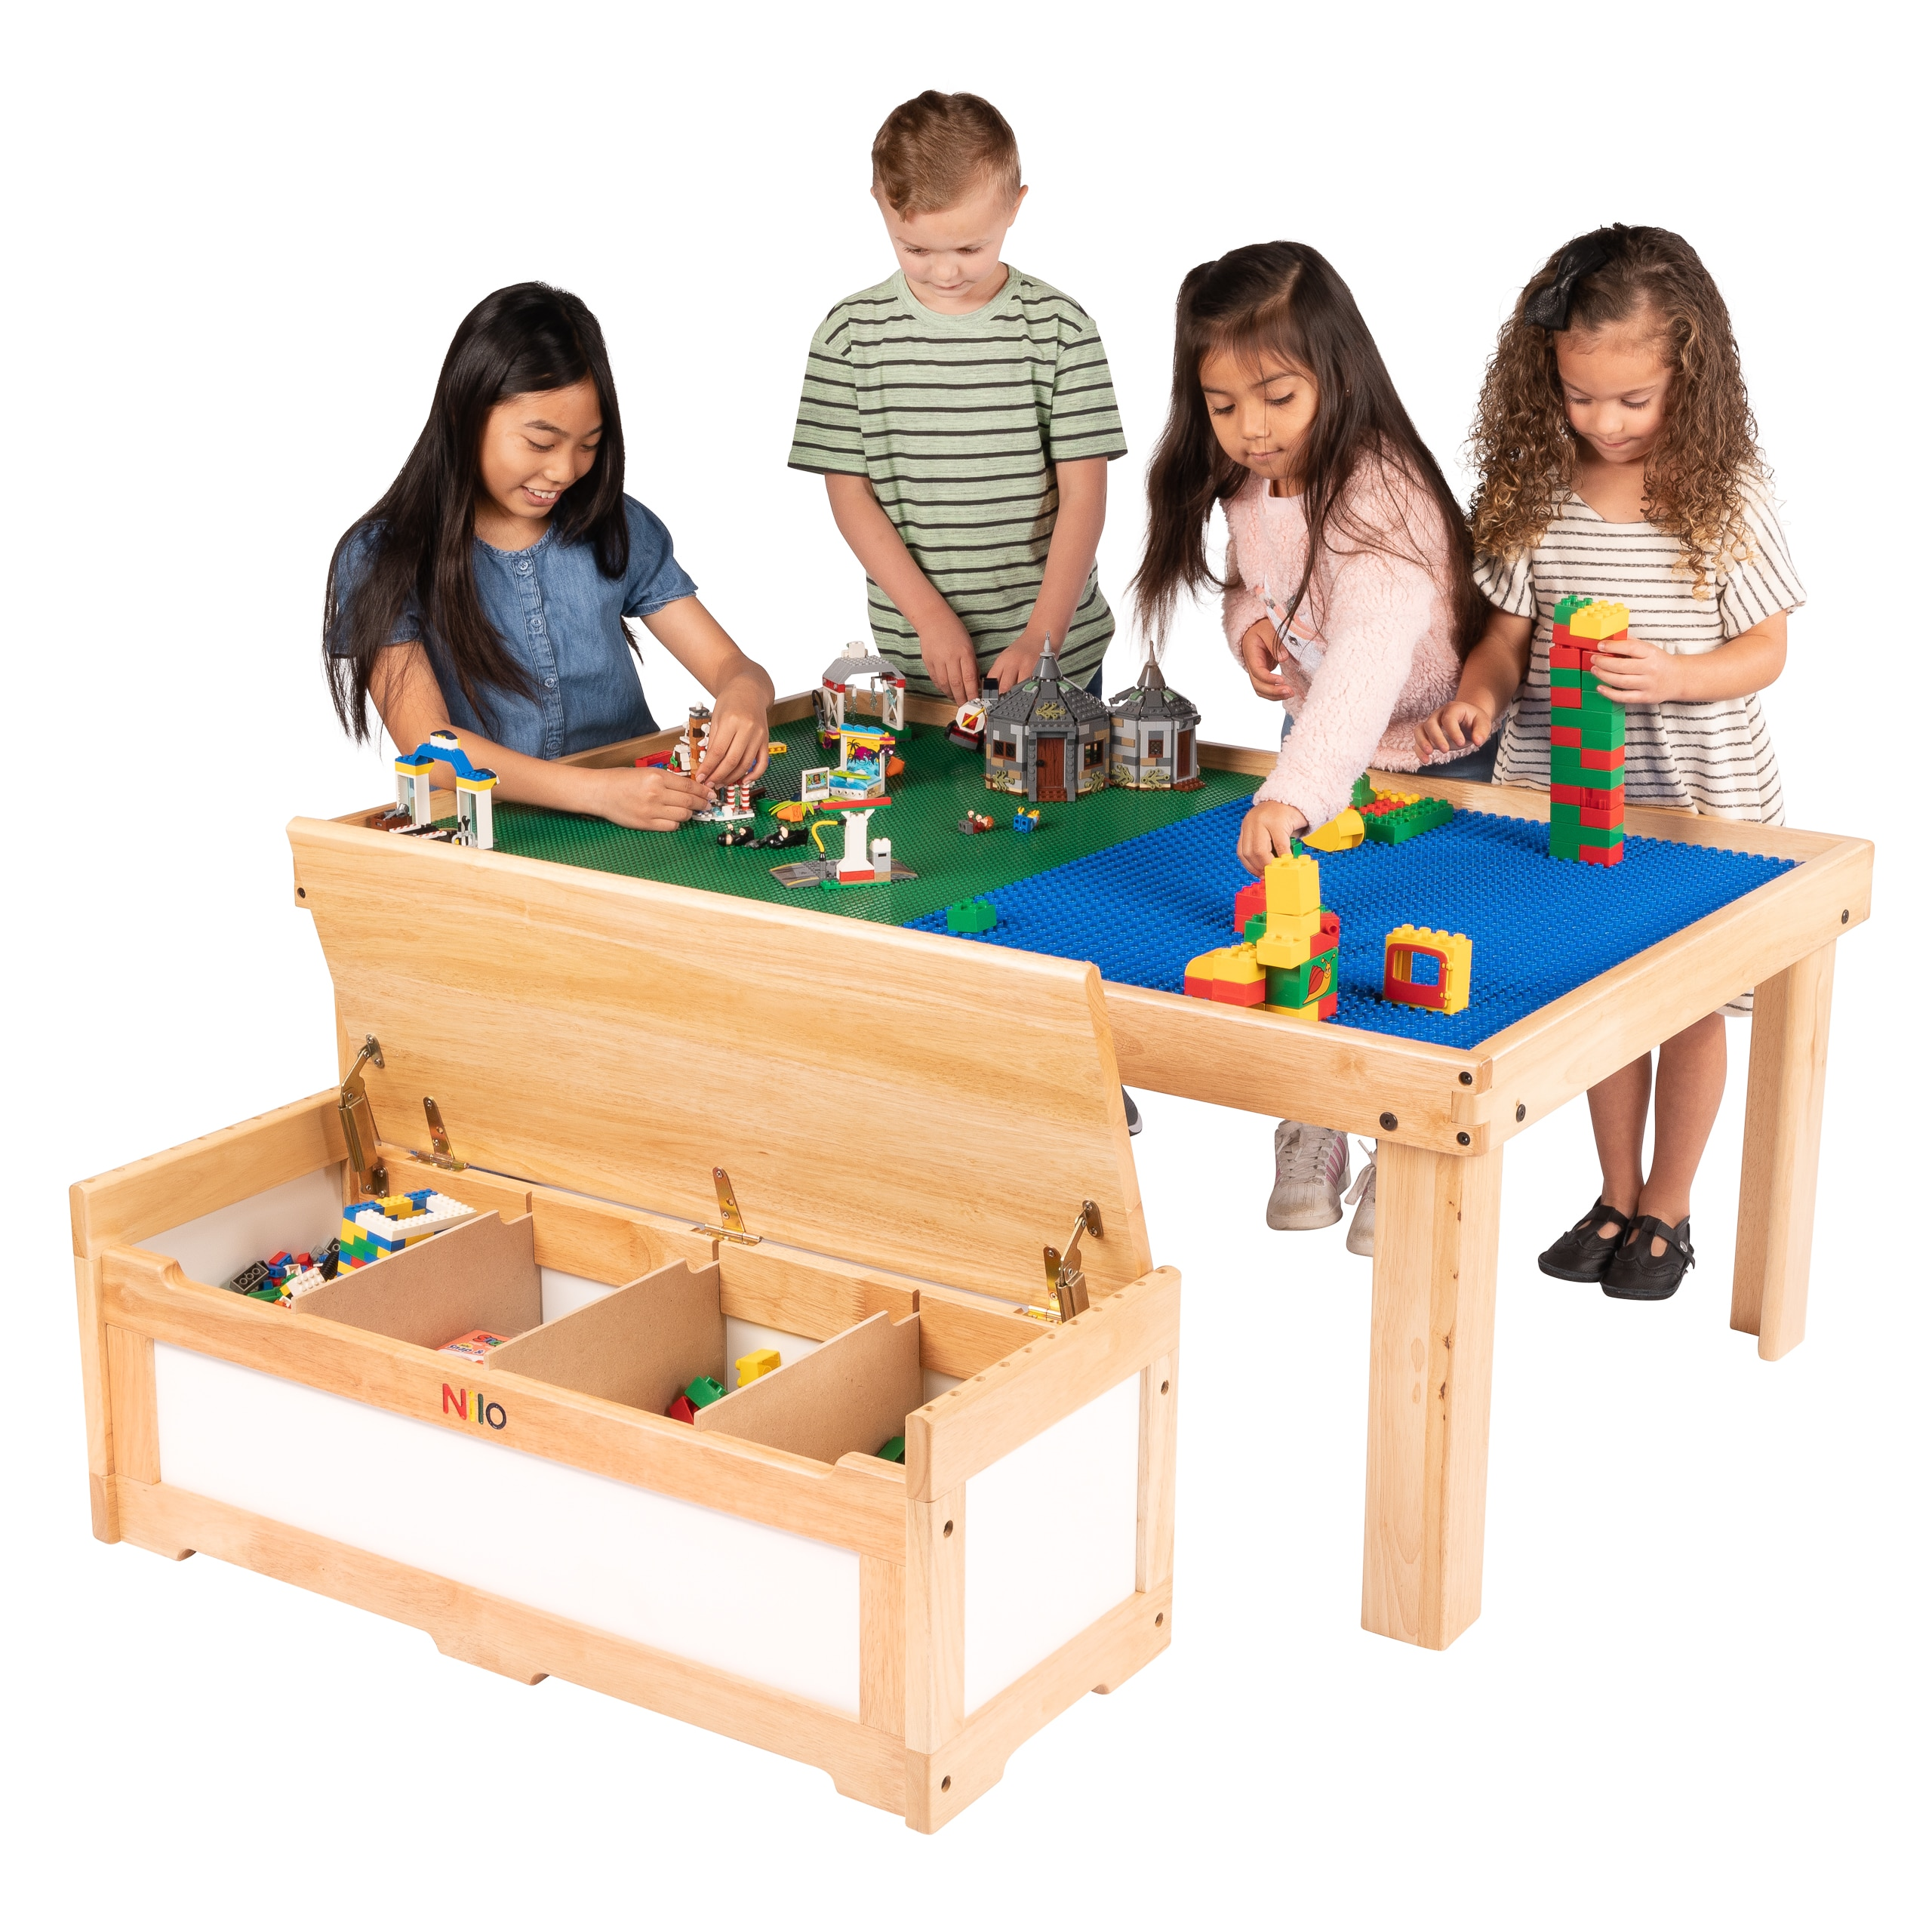 Four children playing with Lego and Duplo blocks on Large Nilo childrens play table and Nilo double-sided Lego Duplo compatible baseplates